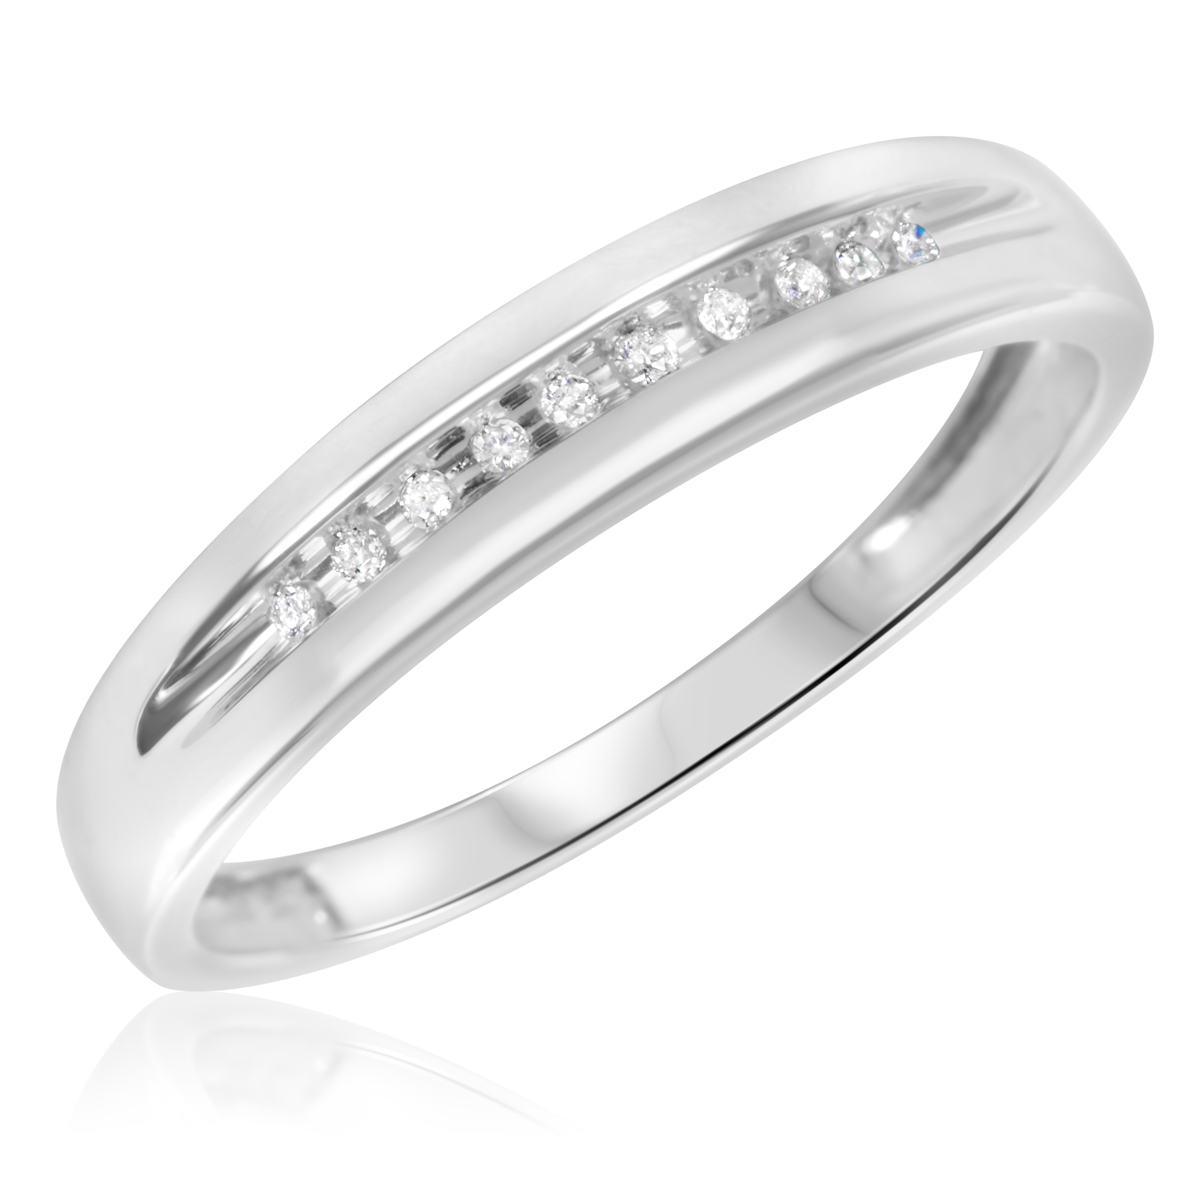 ggywb25 white gold wedding band Senchi I Gye Nyame 14k White Gold Wedding Band